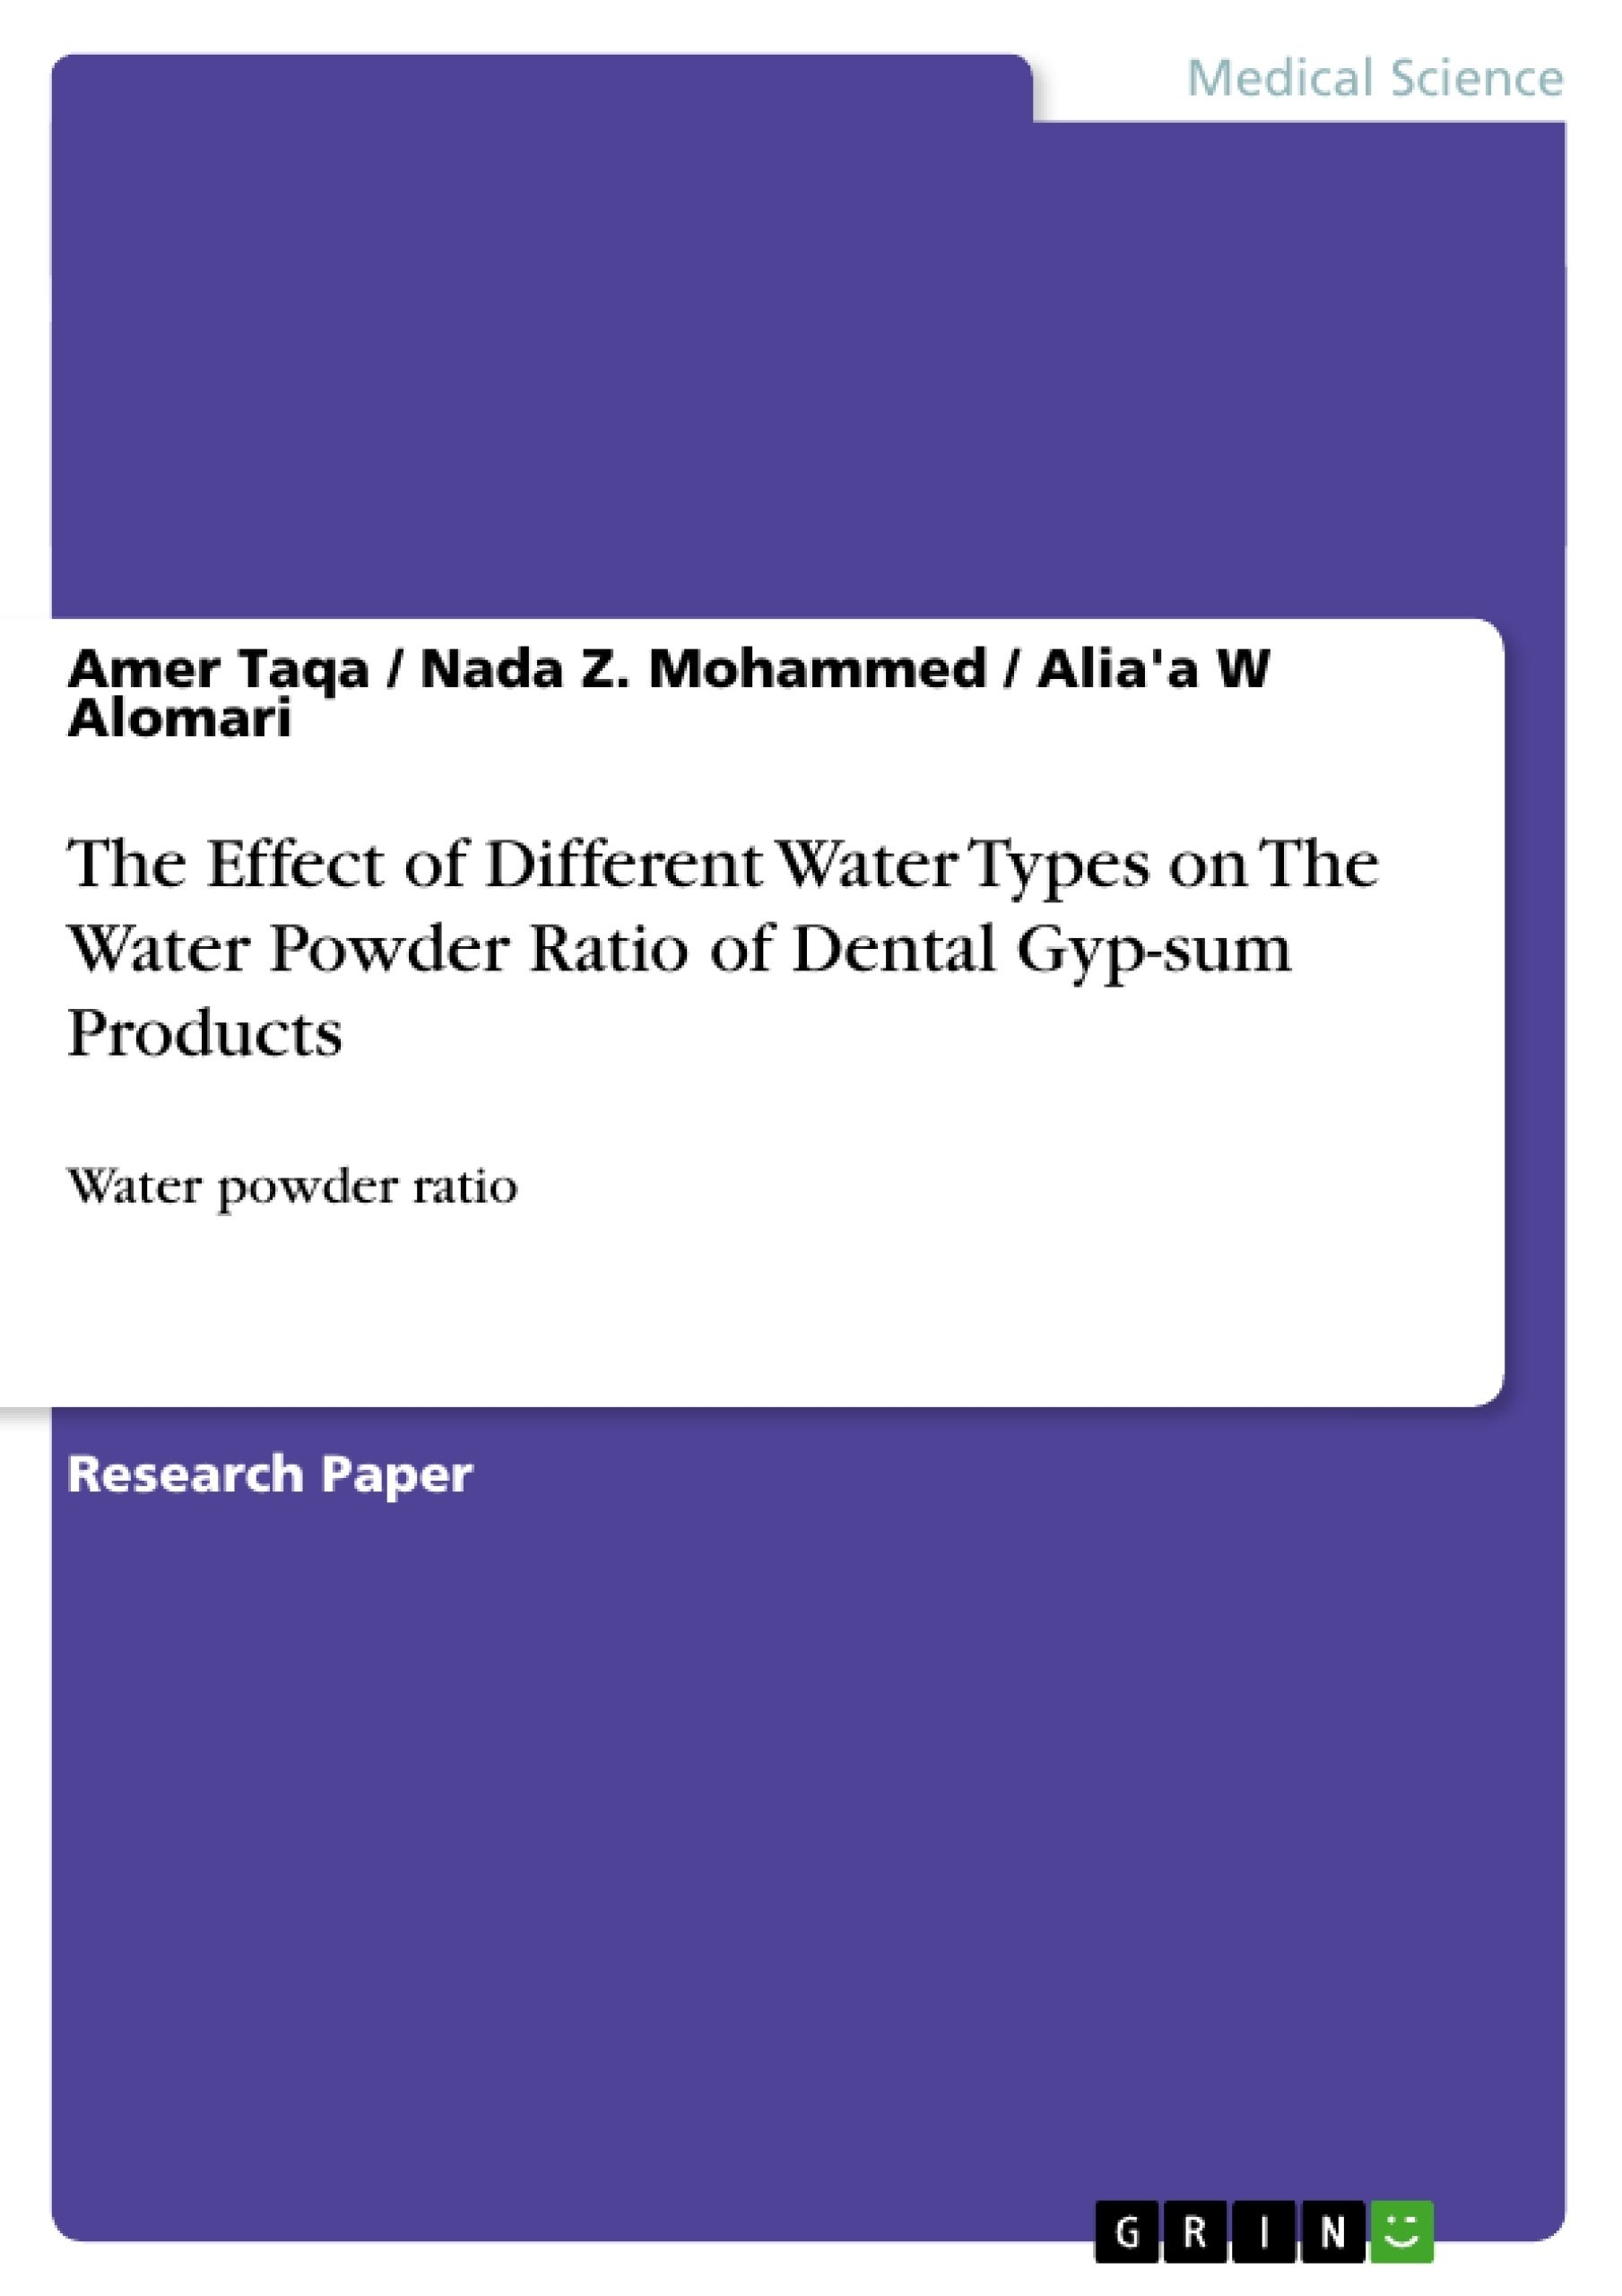 Title: The Effect of Different Water Types on The Water Powder Ratio of Dental Gyp-sum Products